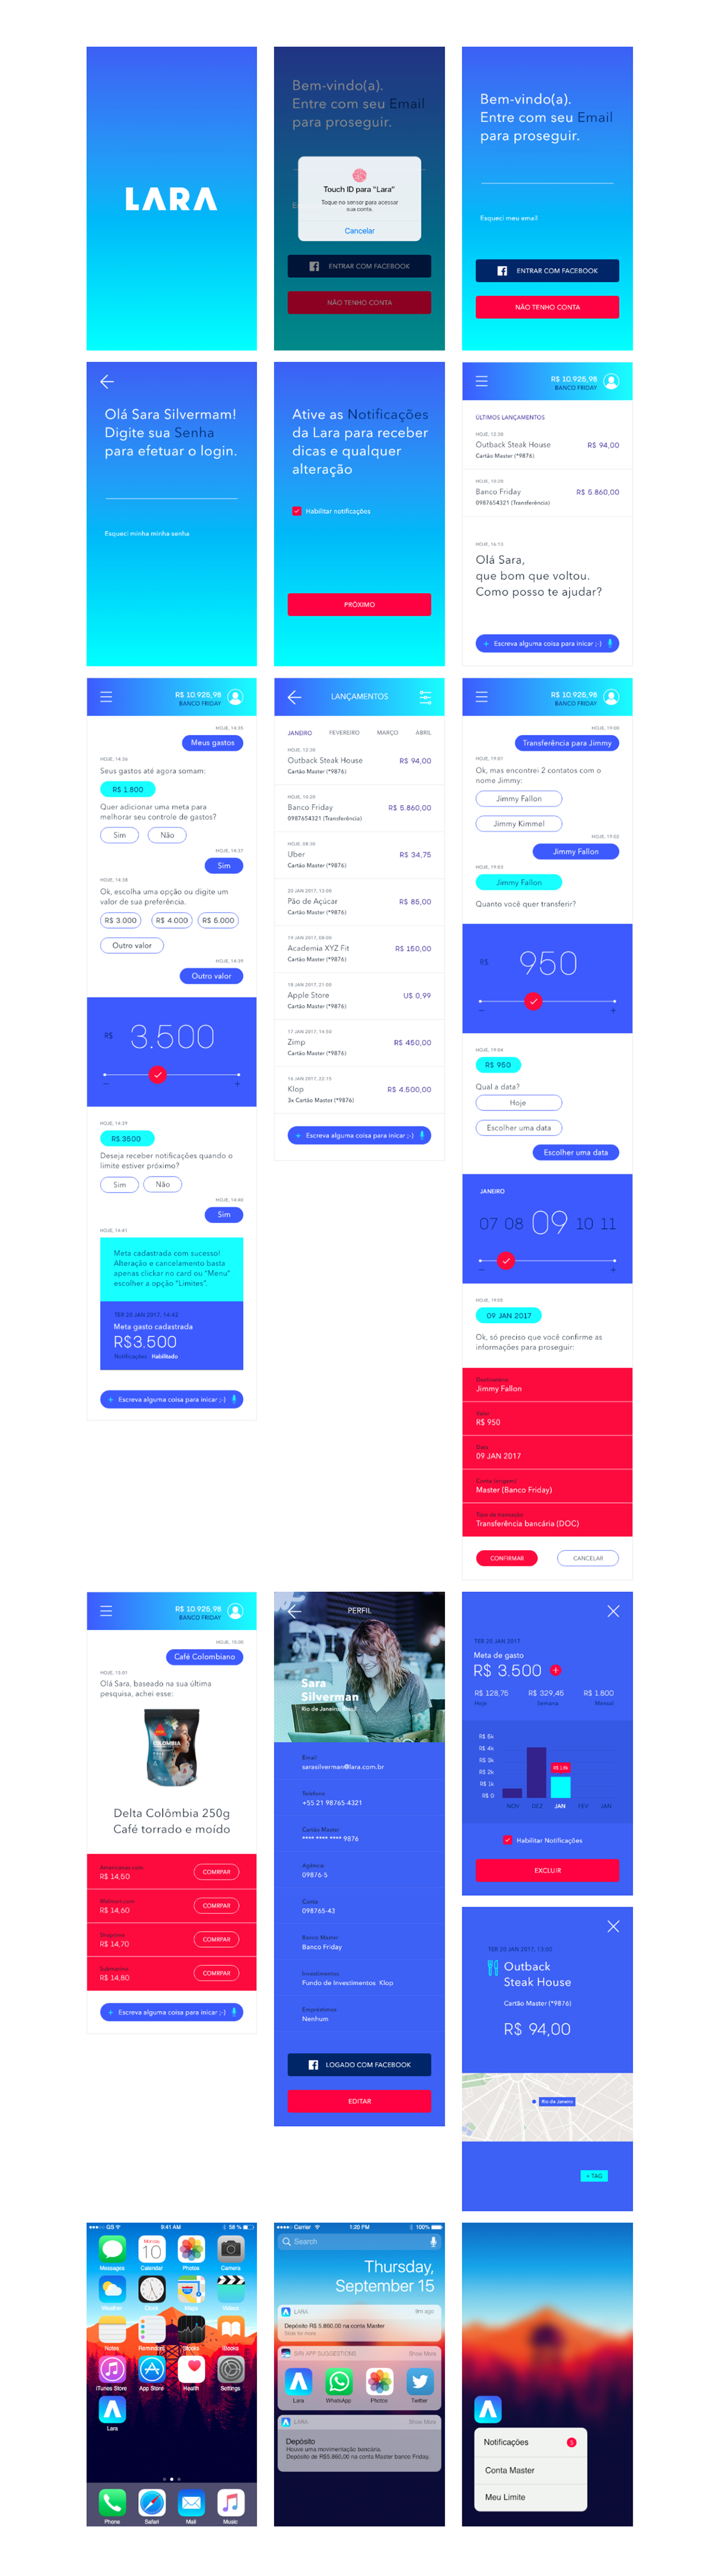 design,interactive,interaction,digital,product,app,mobile,MadeWithAdobeXd